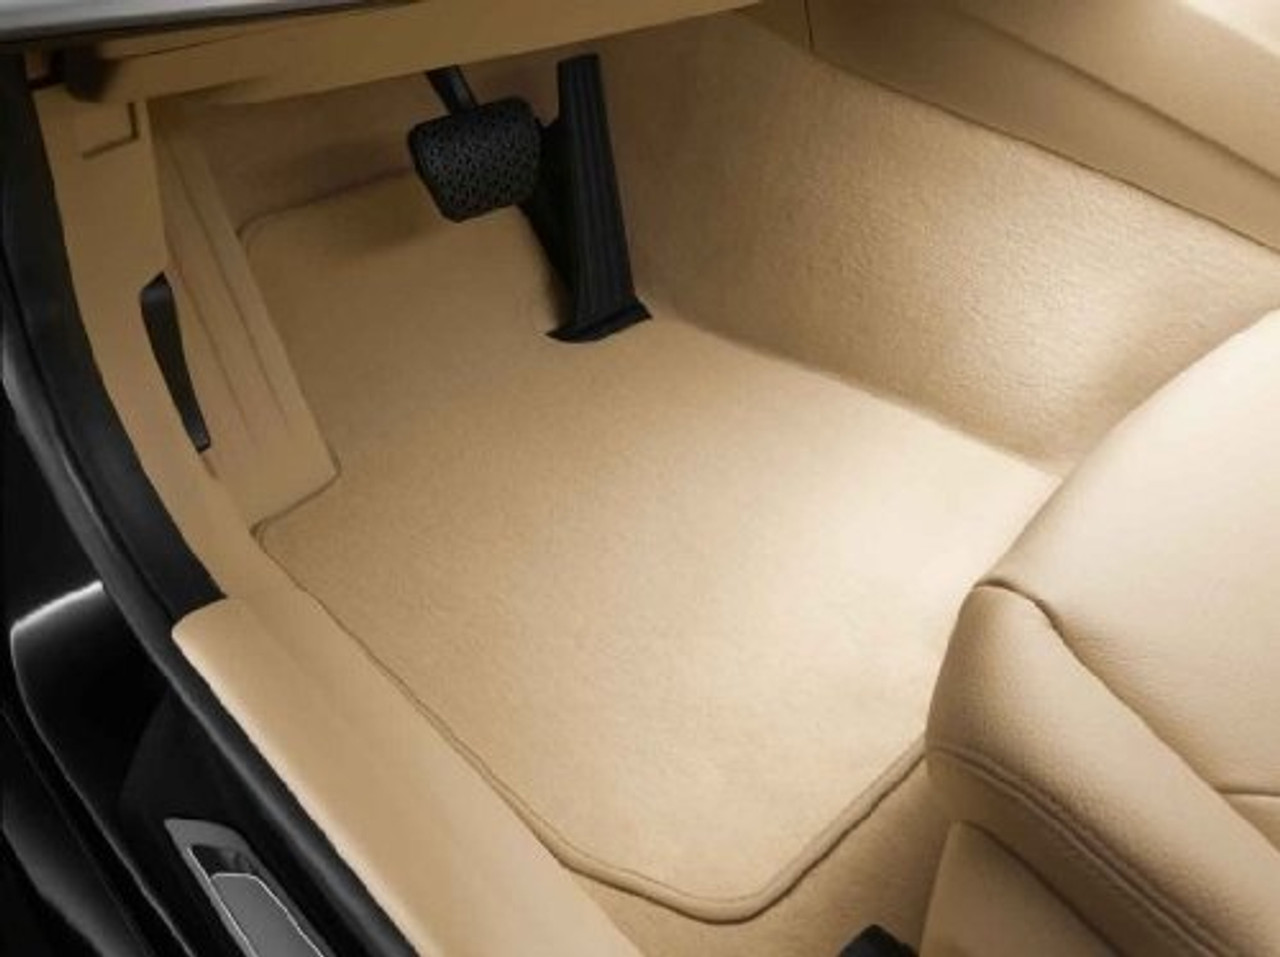 BMW Carpeted Floor Mats in Beige-Tan for F30 F31 F80 3 Series M3, FRONT + REAR